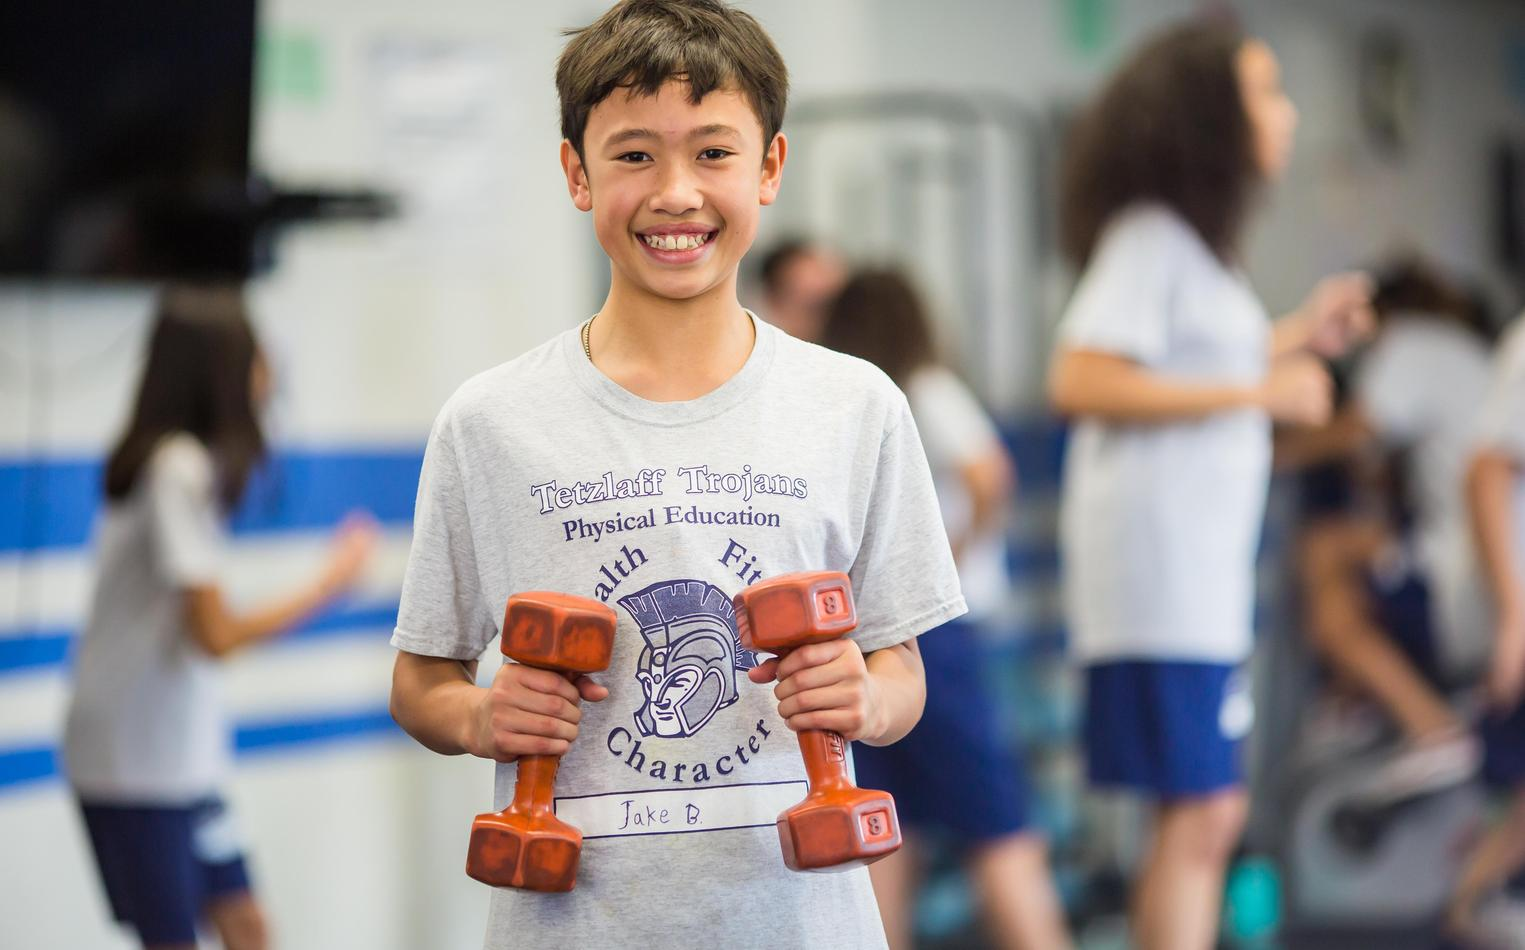 A young male student works out with free weights in the school gym.